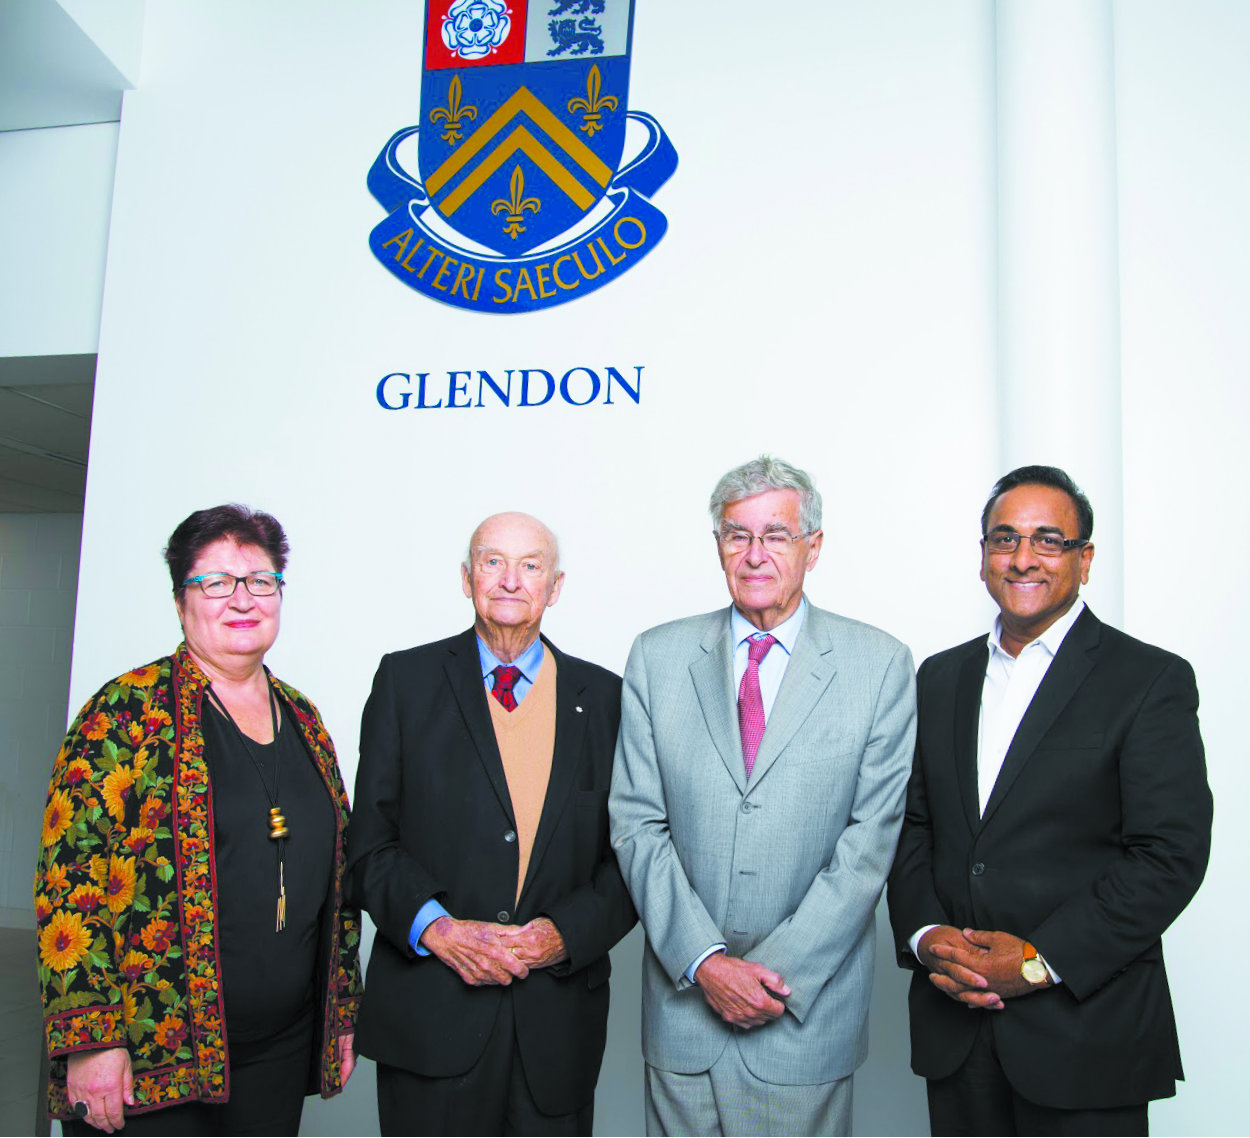 Left to right:Annie Demirjian, Dr. Peter Russell, The Hon. Louis LeBel,Dr. Radha Persaud